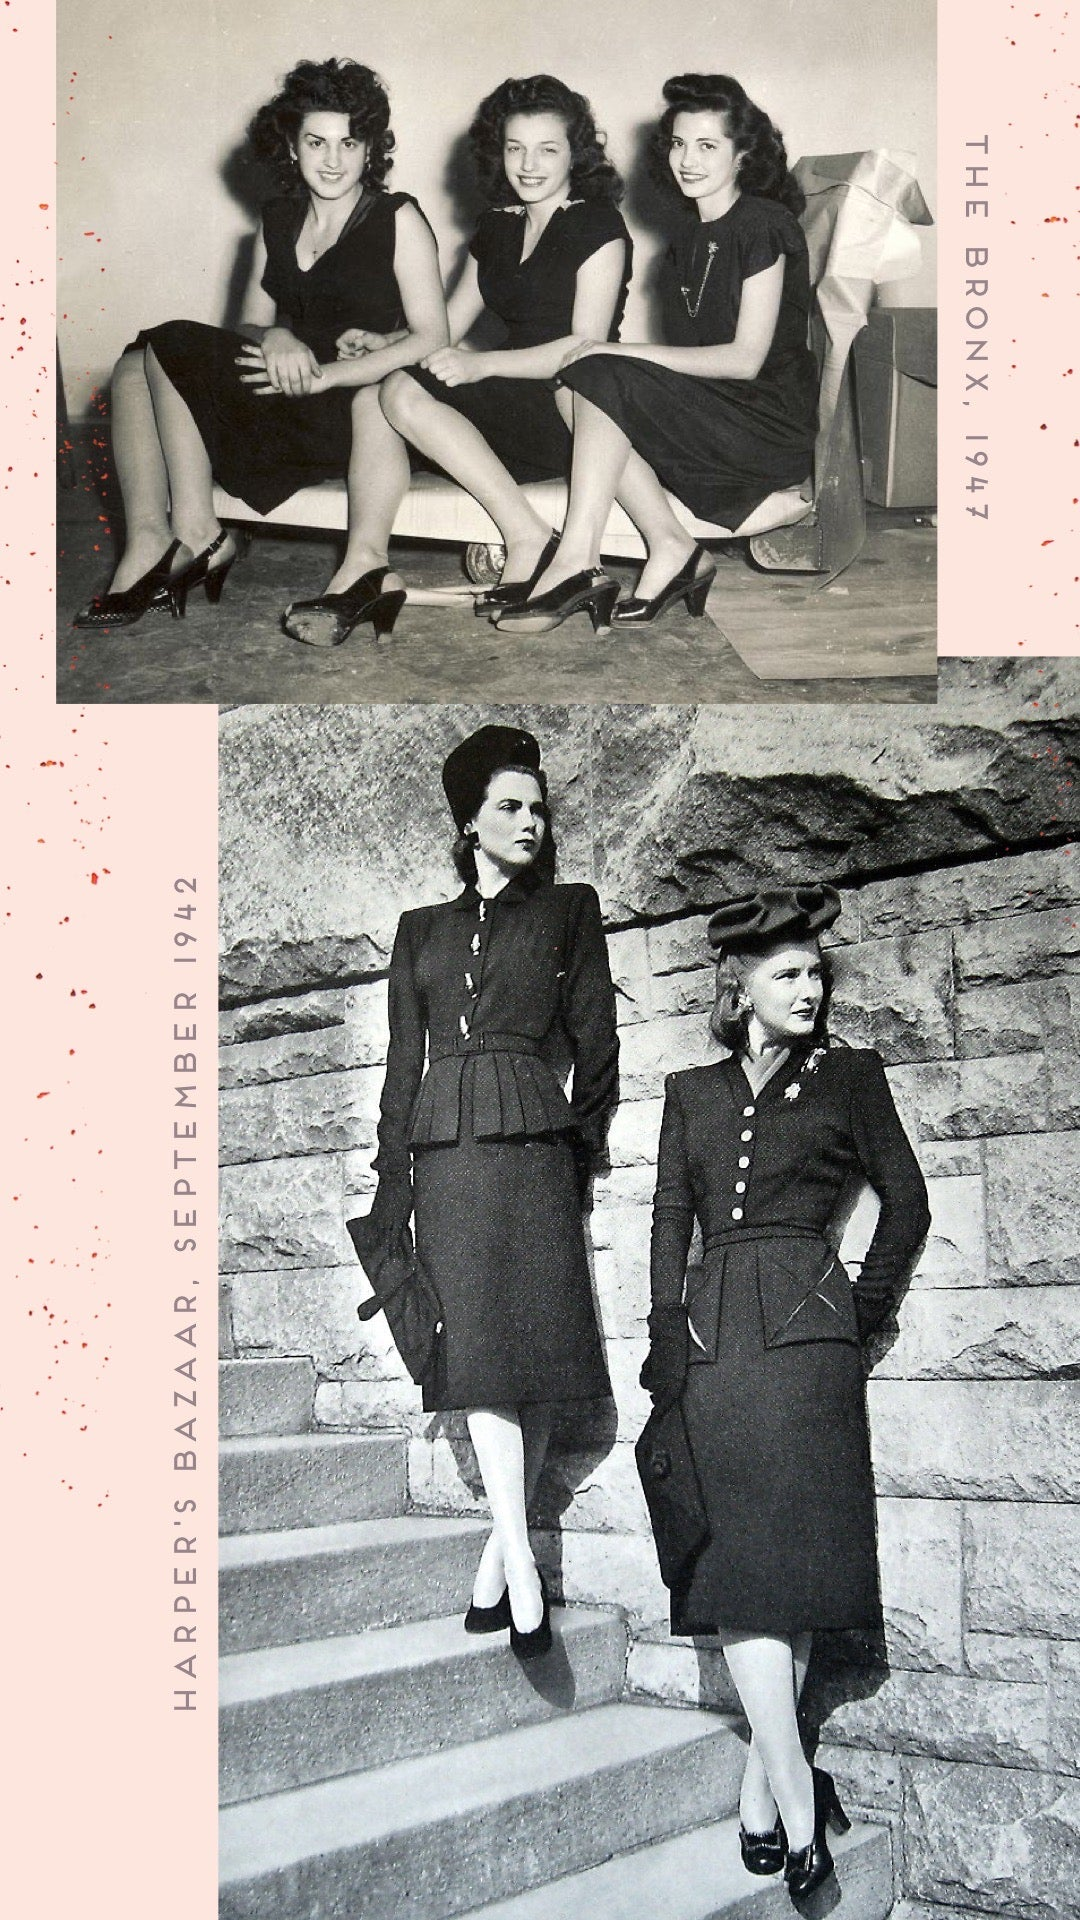 photo: top- the bronx, 1947 three friends with fluffy 40's hair, wearing similar short sleeve knee-length black dresses, sit on a low-rolling cart, with their legs level with their hips, with legs-crossed haphazardly at the ankle.  photo: bottom- harper's bazaar, September 1942 two models stand a step-apart on stairs, leaning on a stone wall. both wear tailored suits, left hand resting against the wall on their low back, right arms hold a large clutch, legs cross at the ankle both are earring simple black pumps.